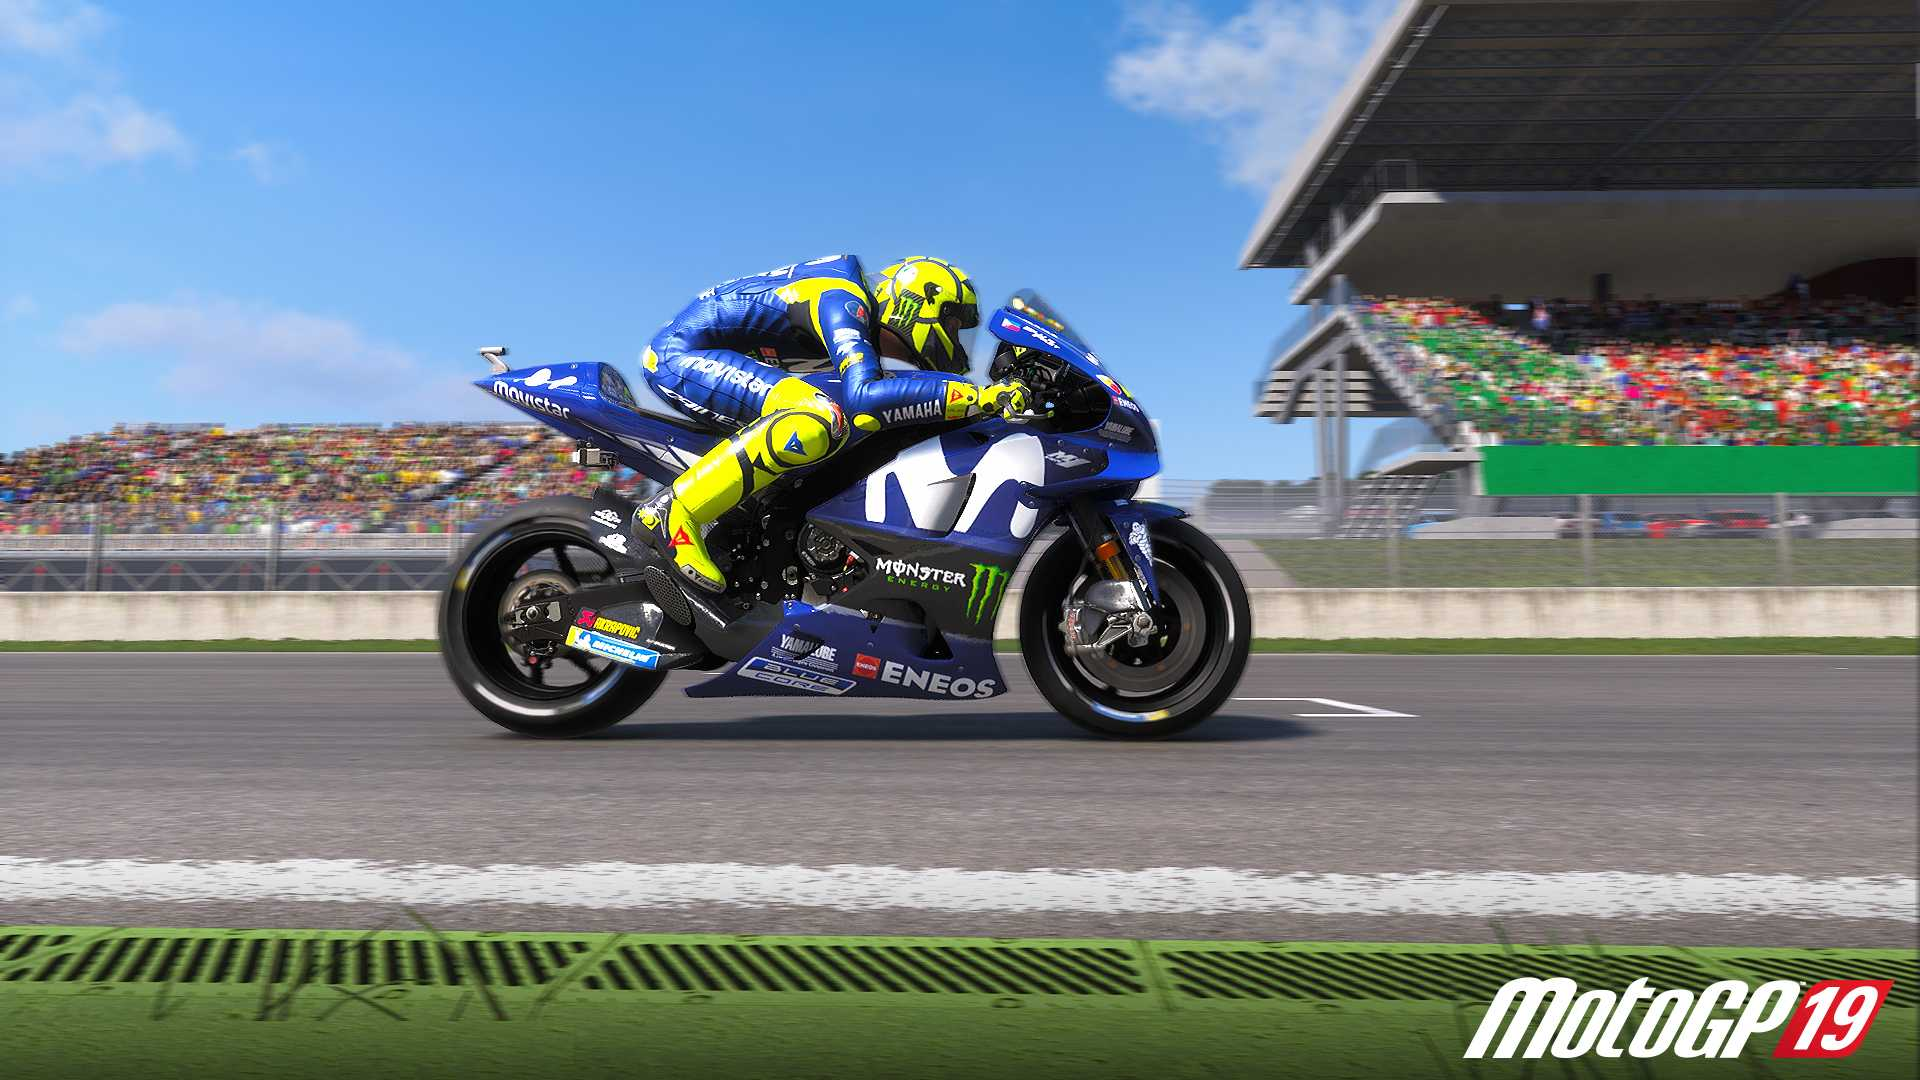 Motogp 19 Gameplay Footage Finally Breaks Cover